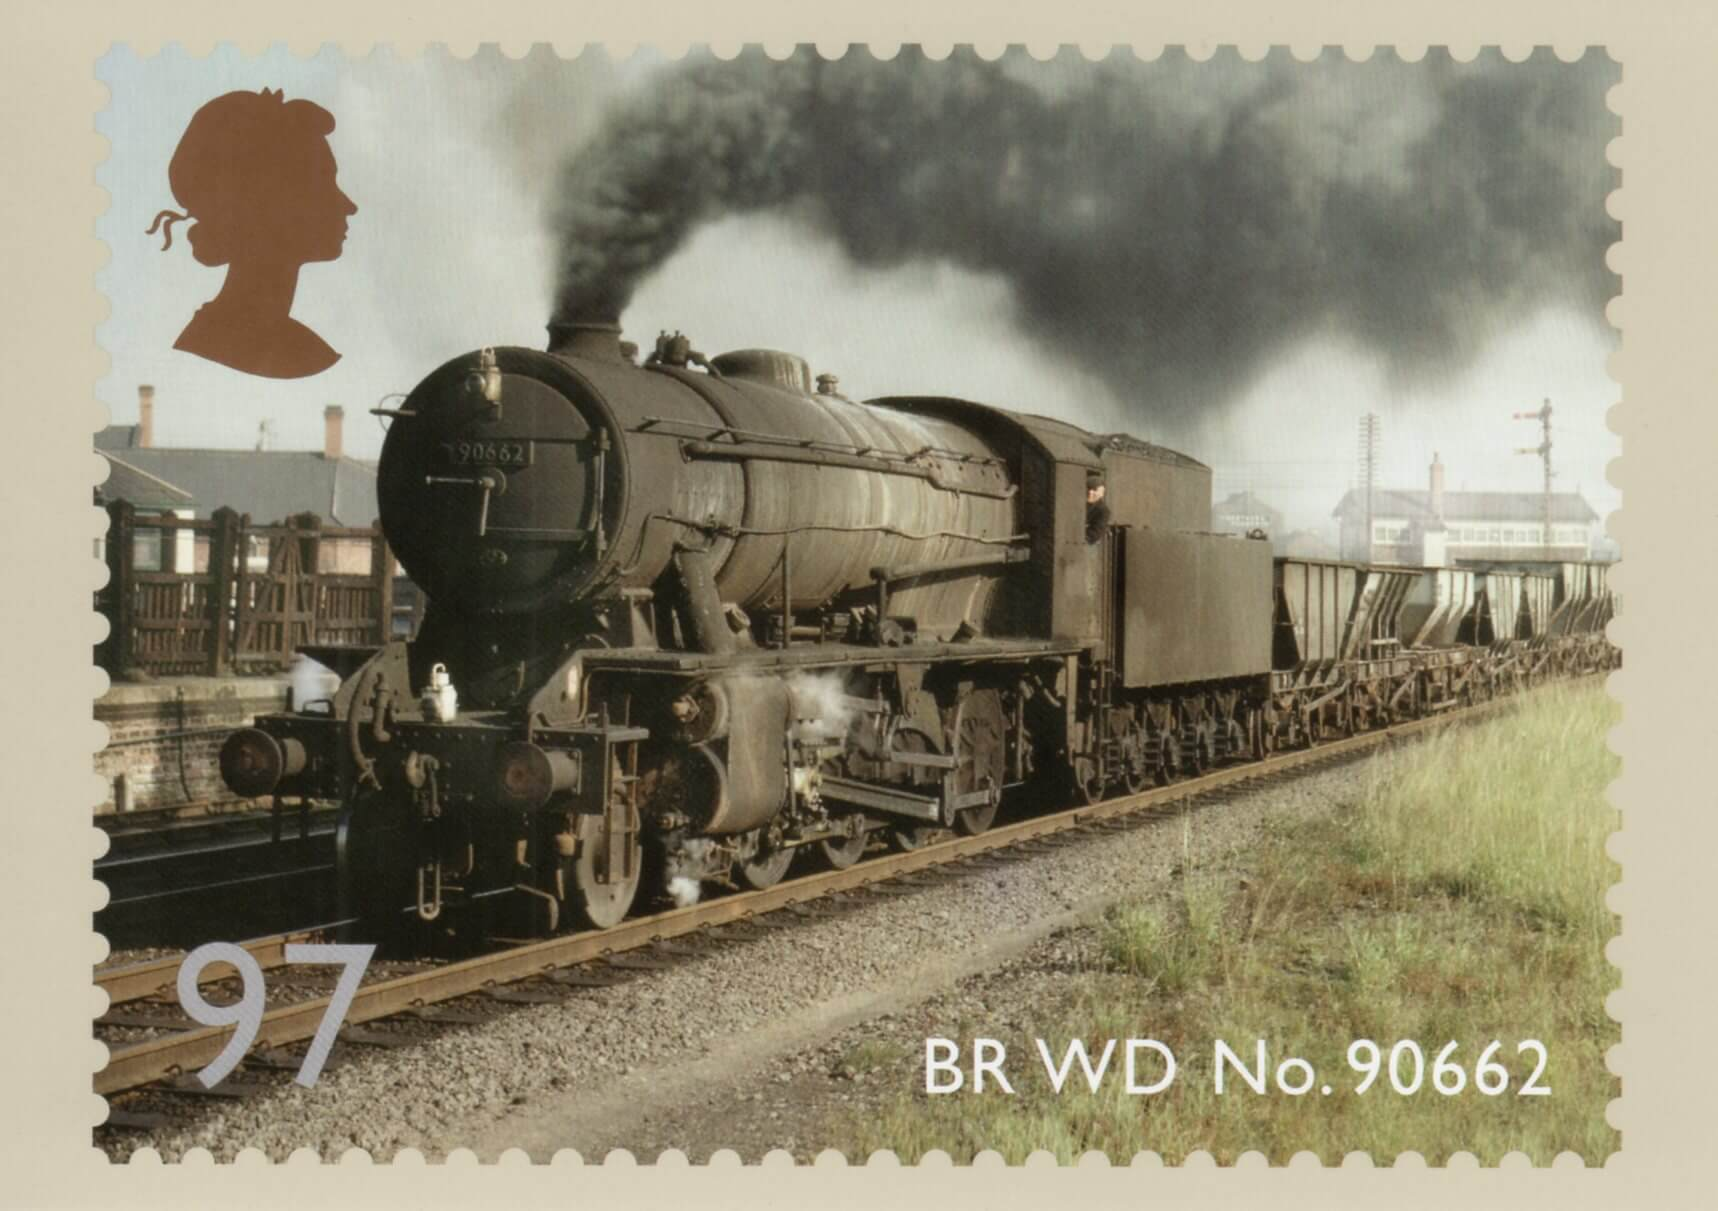 Classic Locomotives Of England 2011 Collect GB Stamps